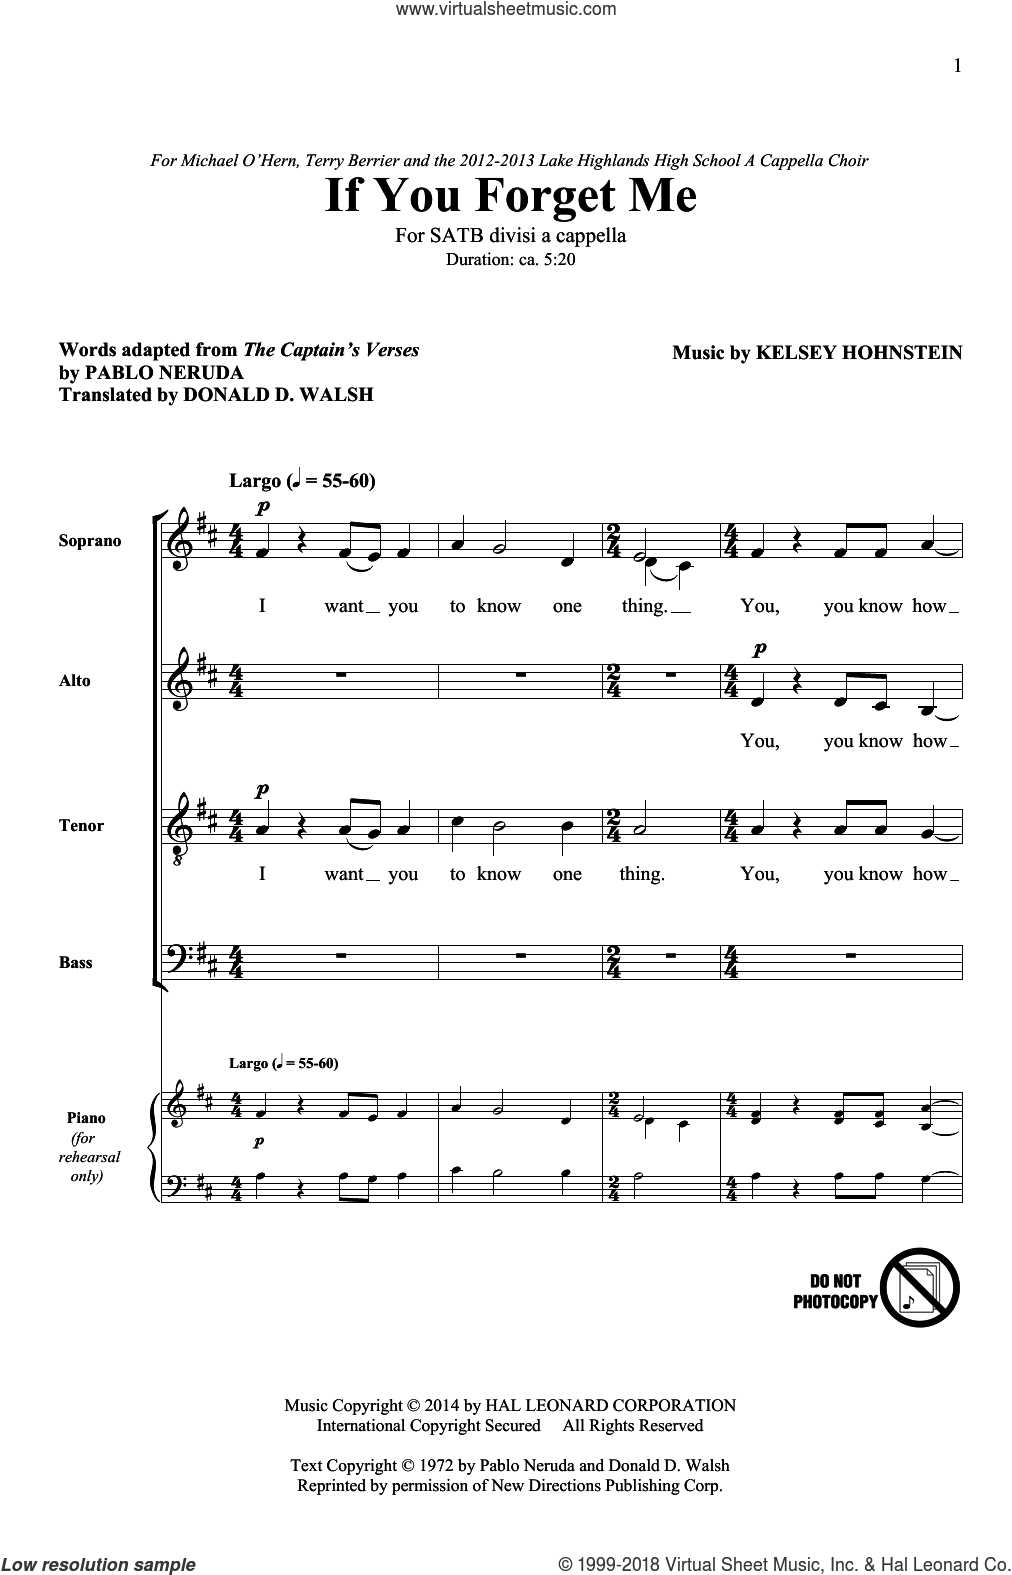 If You Forget Me sheet music for choir (SATB: soprano, alto, tenor, bass) by Kelsey Hohnstein, Donald D. Walsh and Pablo Neruda, intermediate skill level